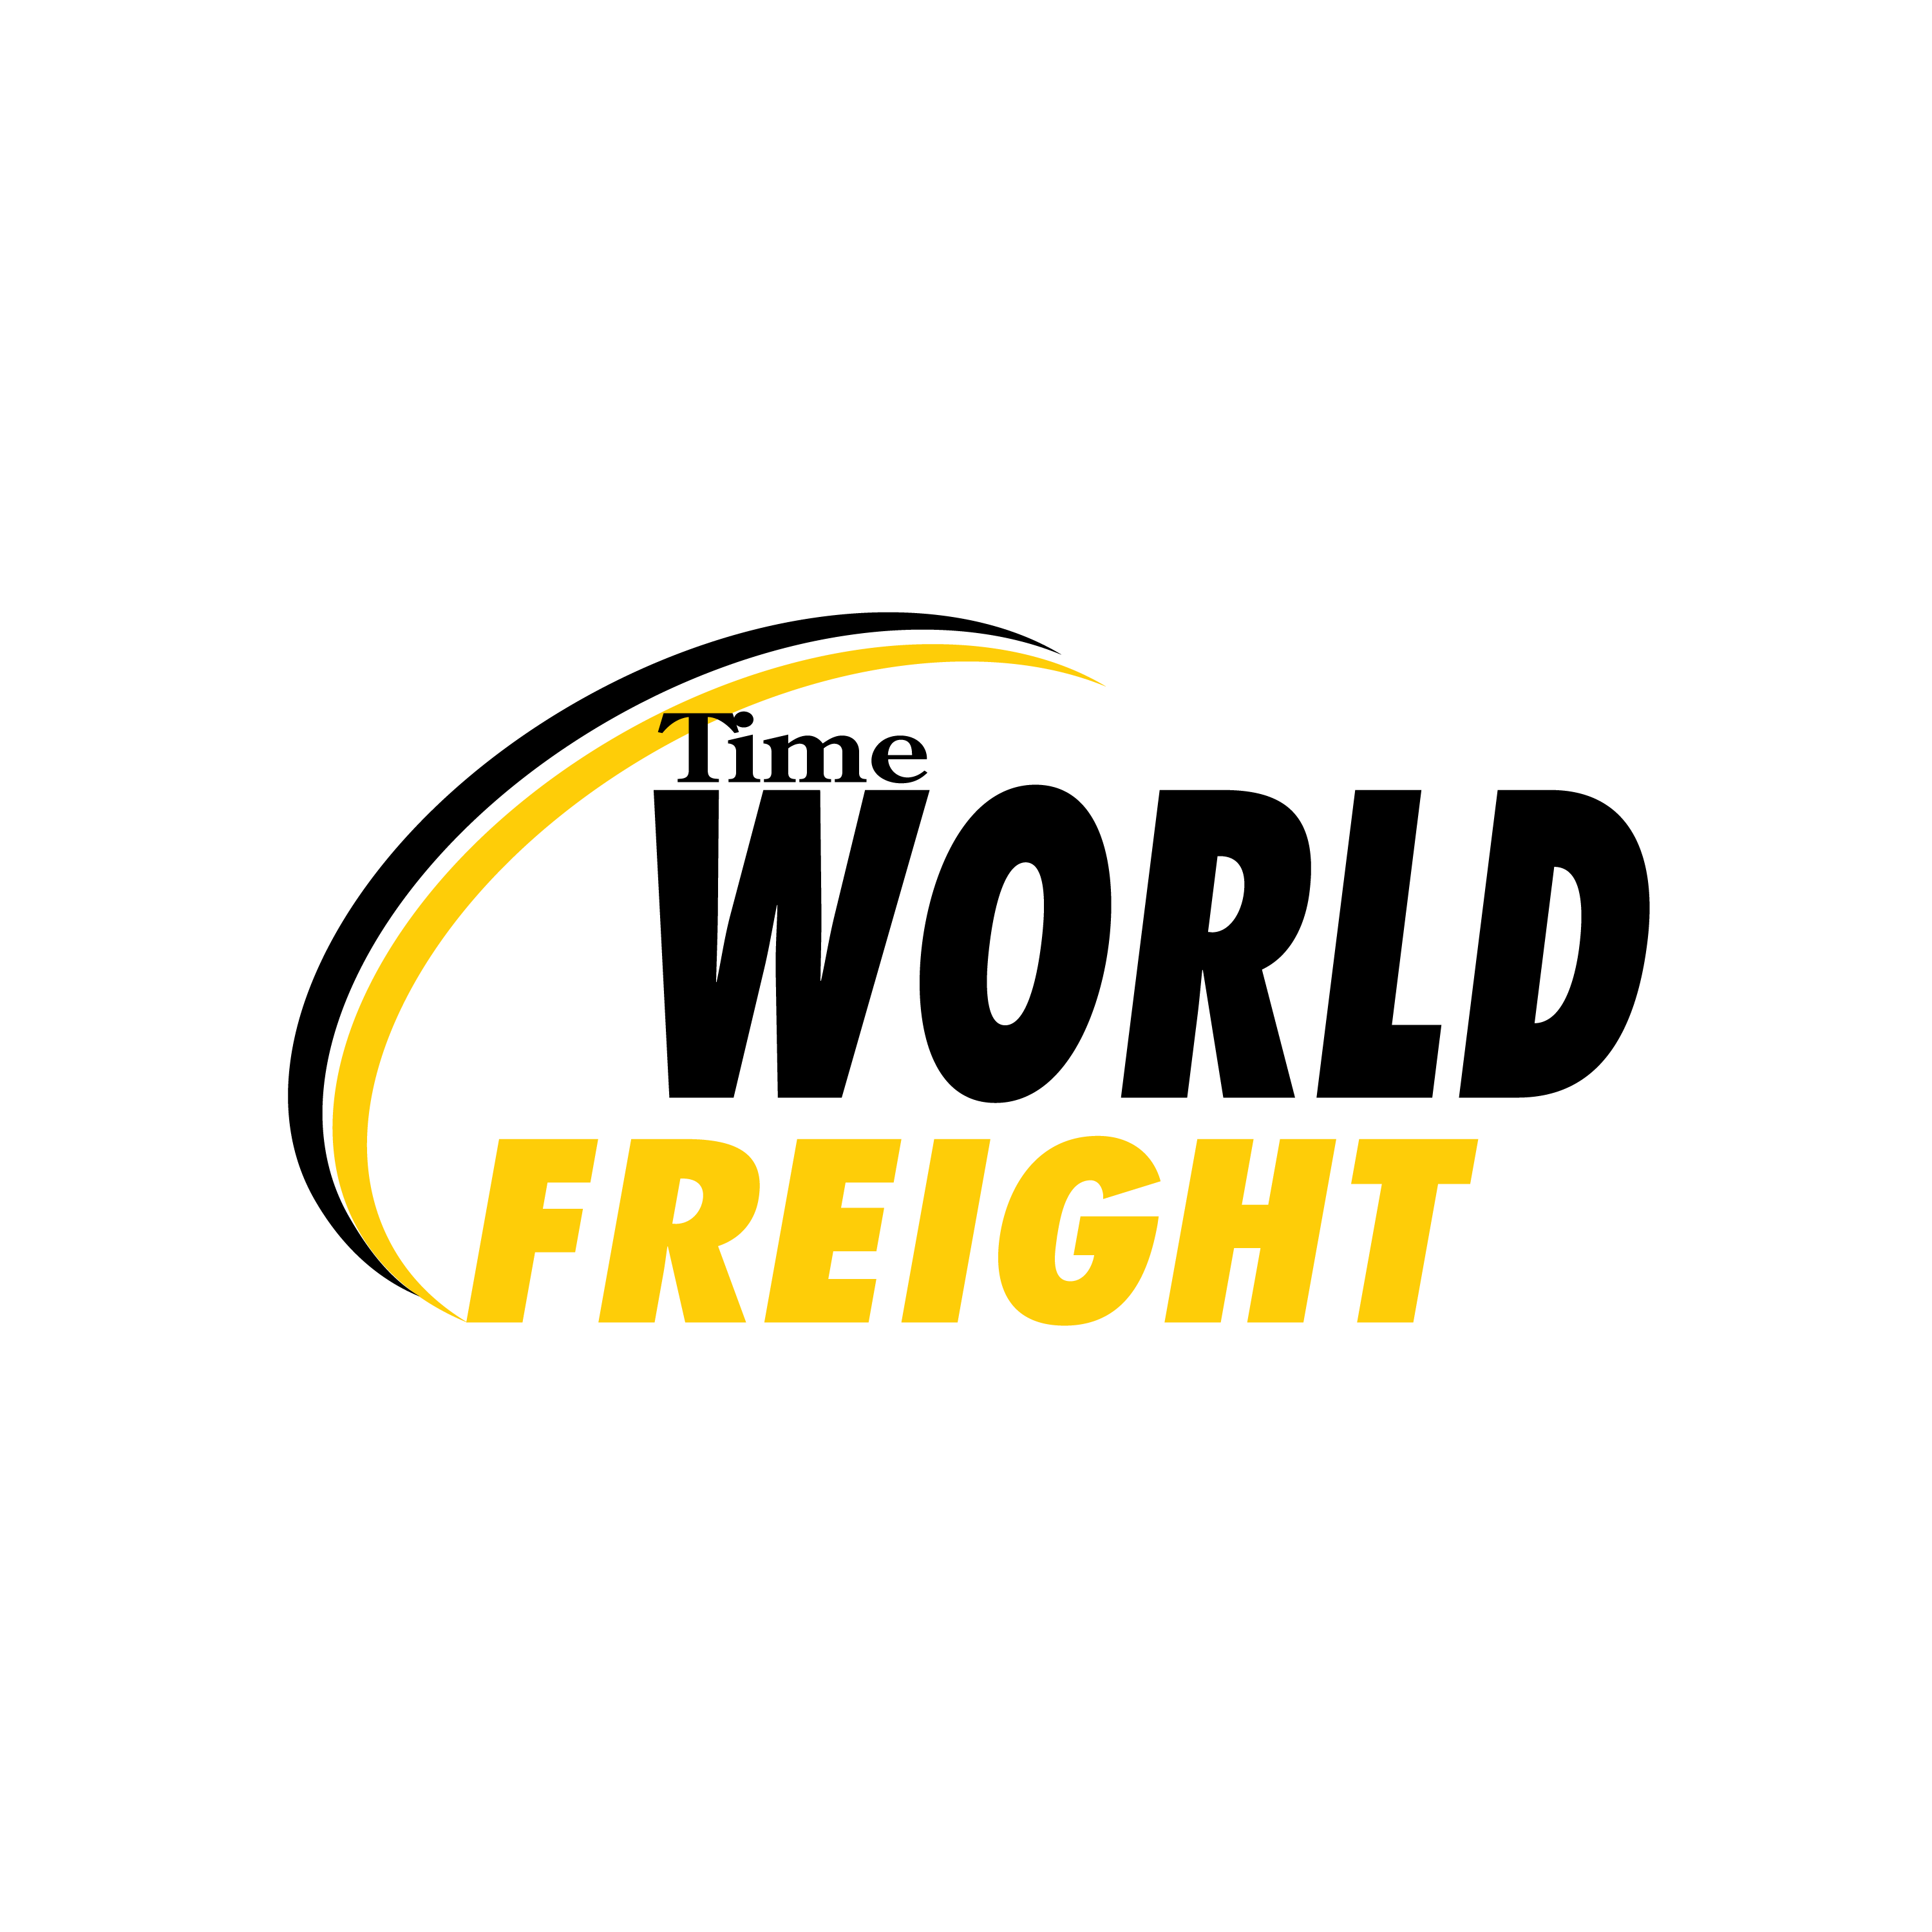 Time World Freight